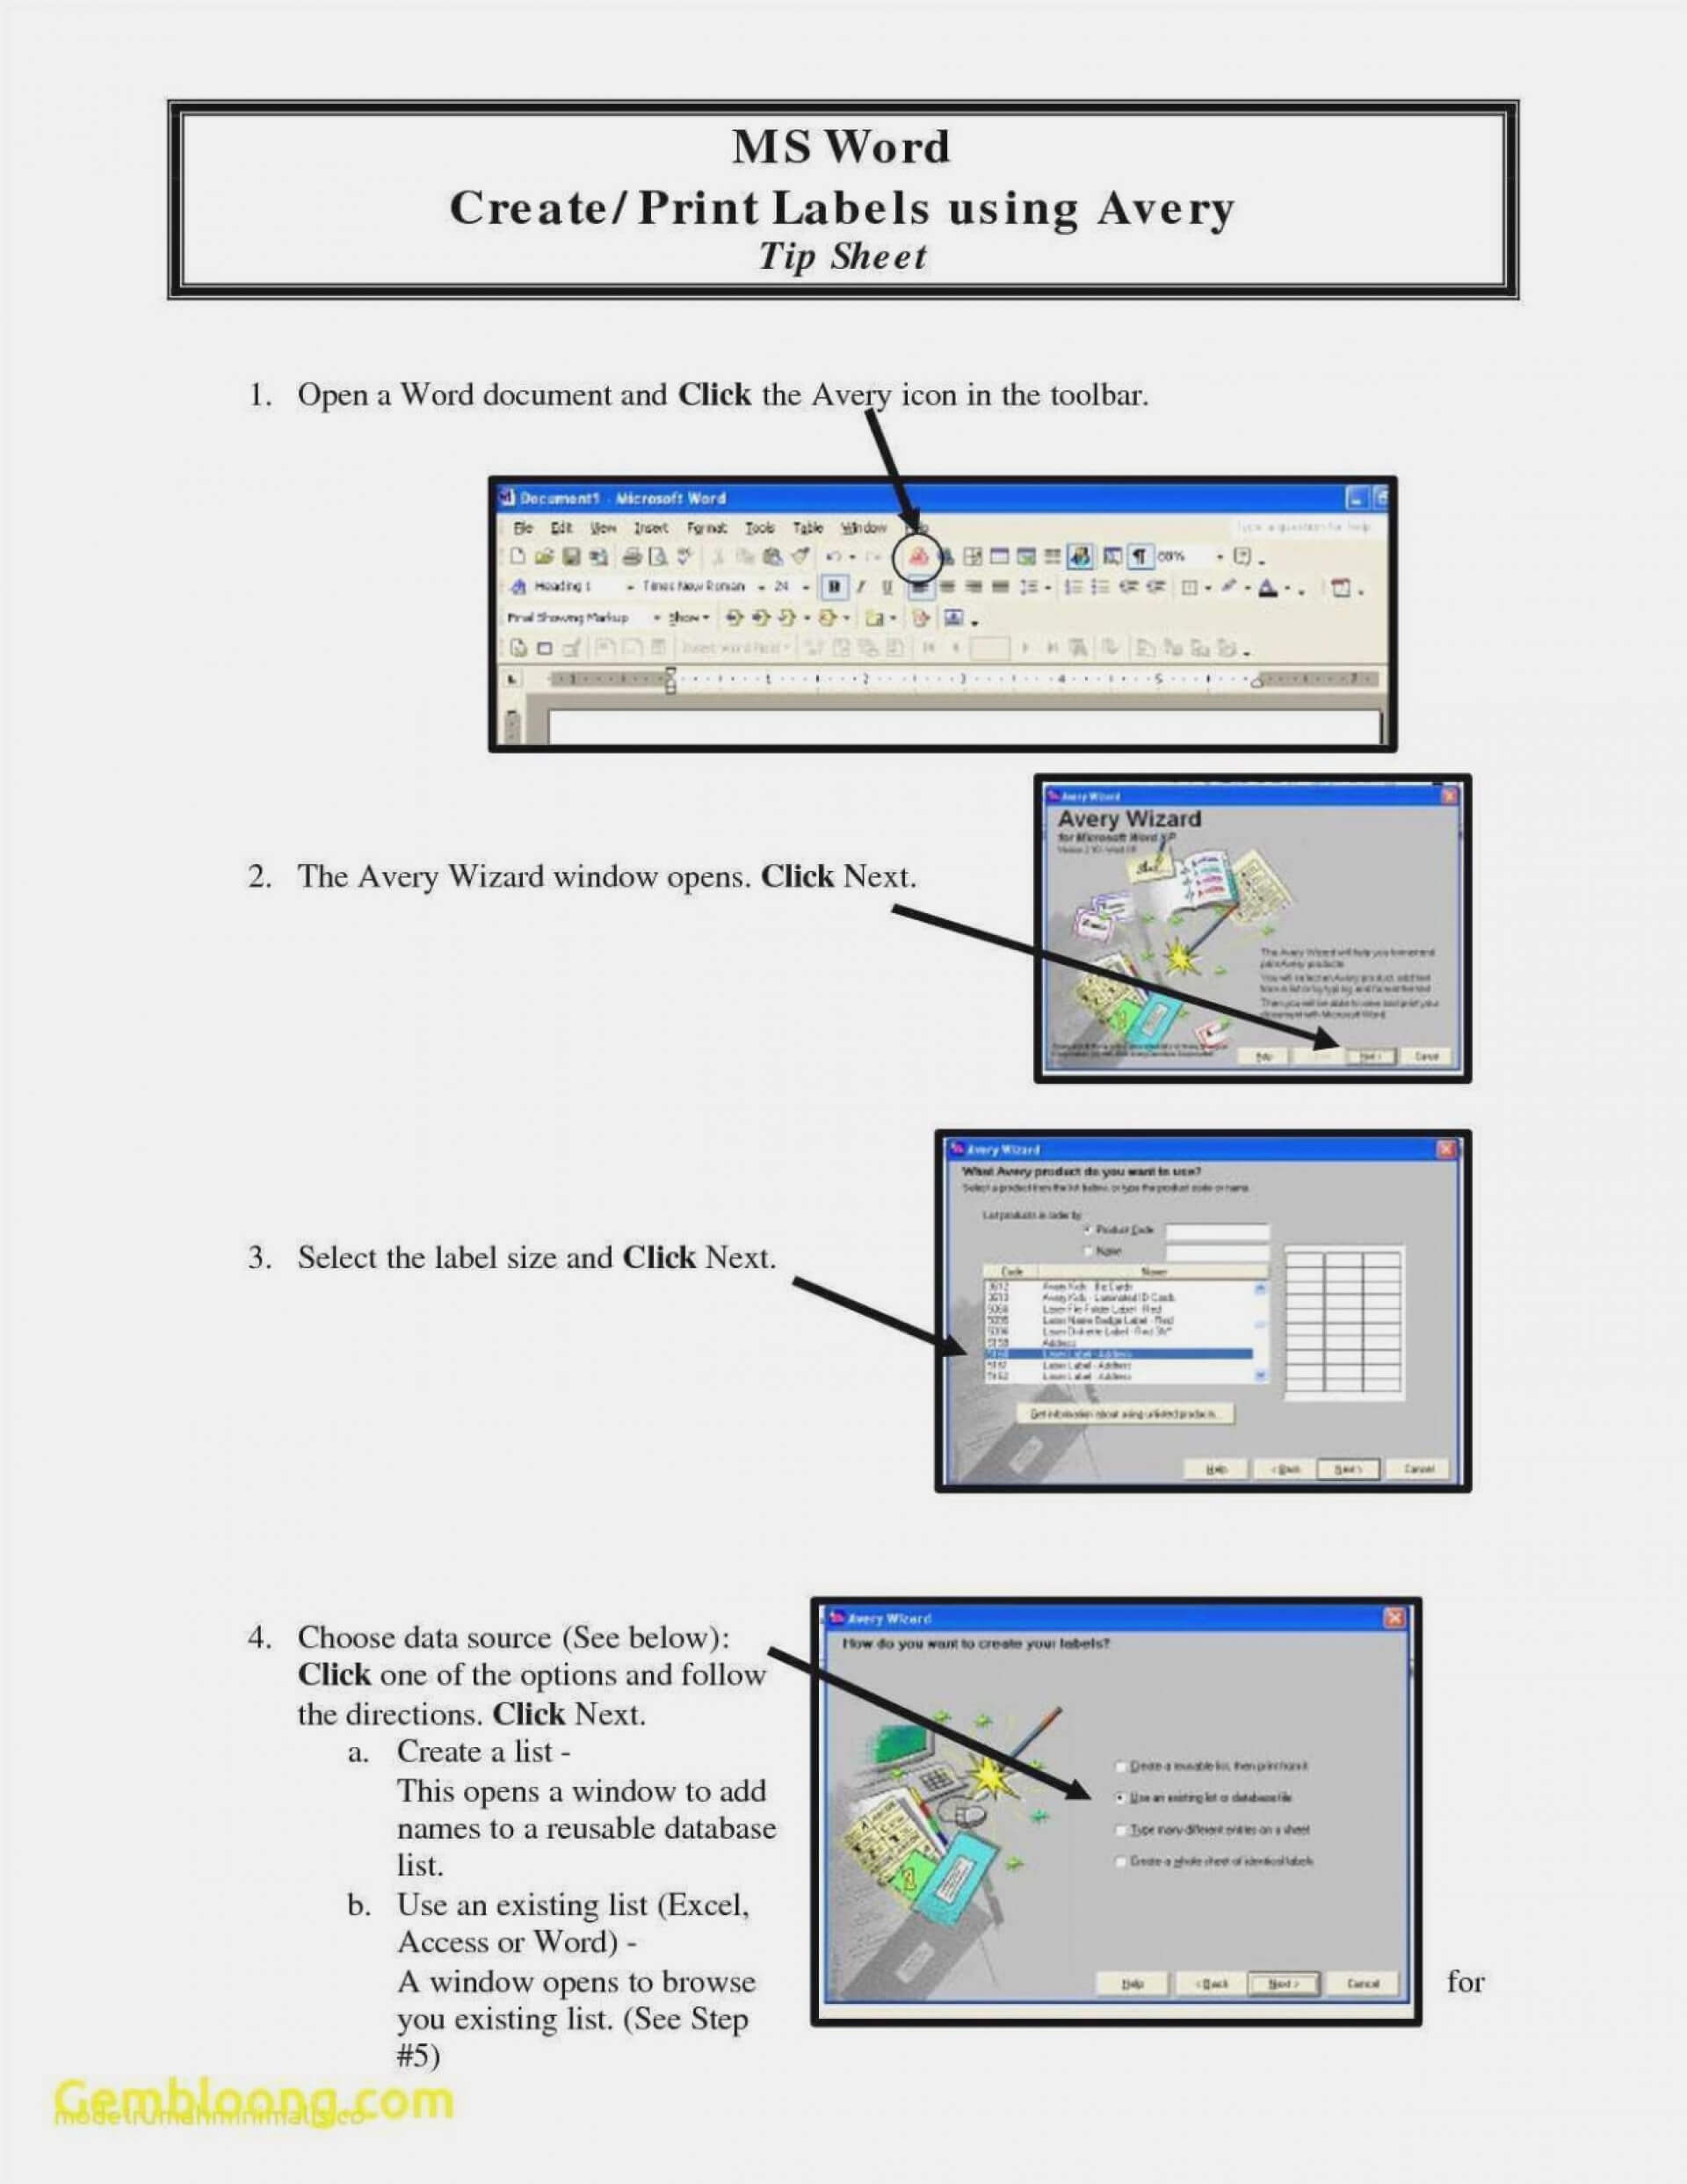 016 Template Ideas Label Templates For Word Per Sheet Avery With Regard To 3 Labels Per Sheet Template